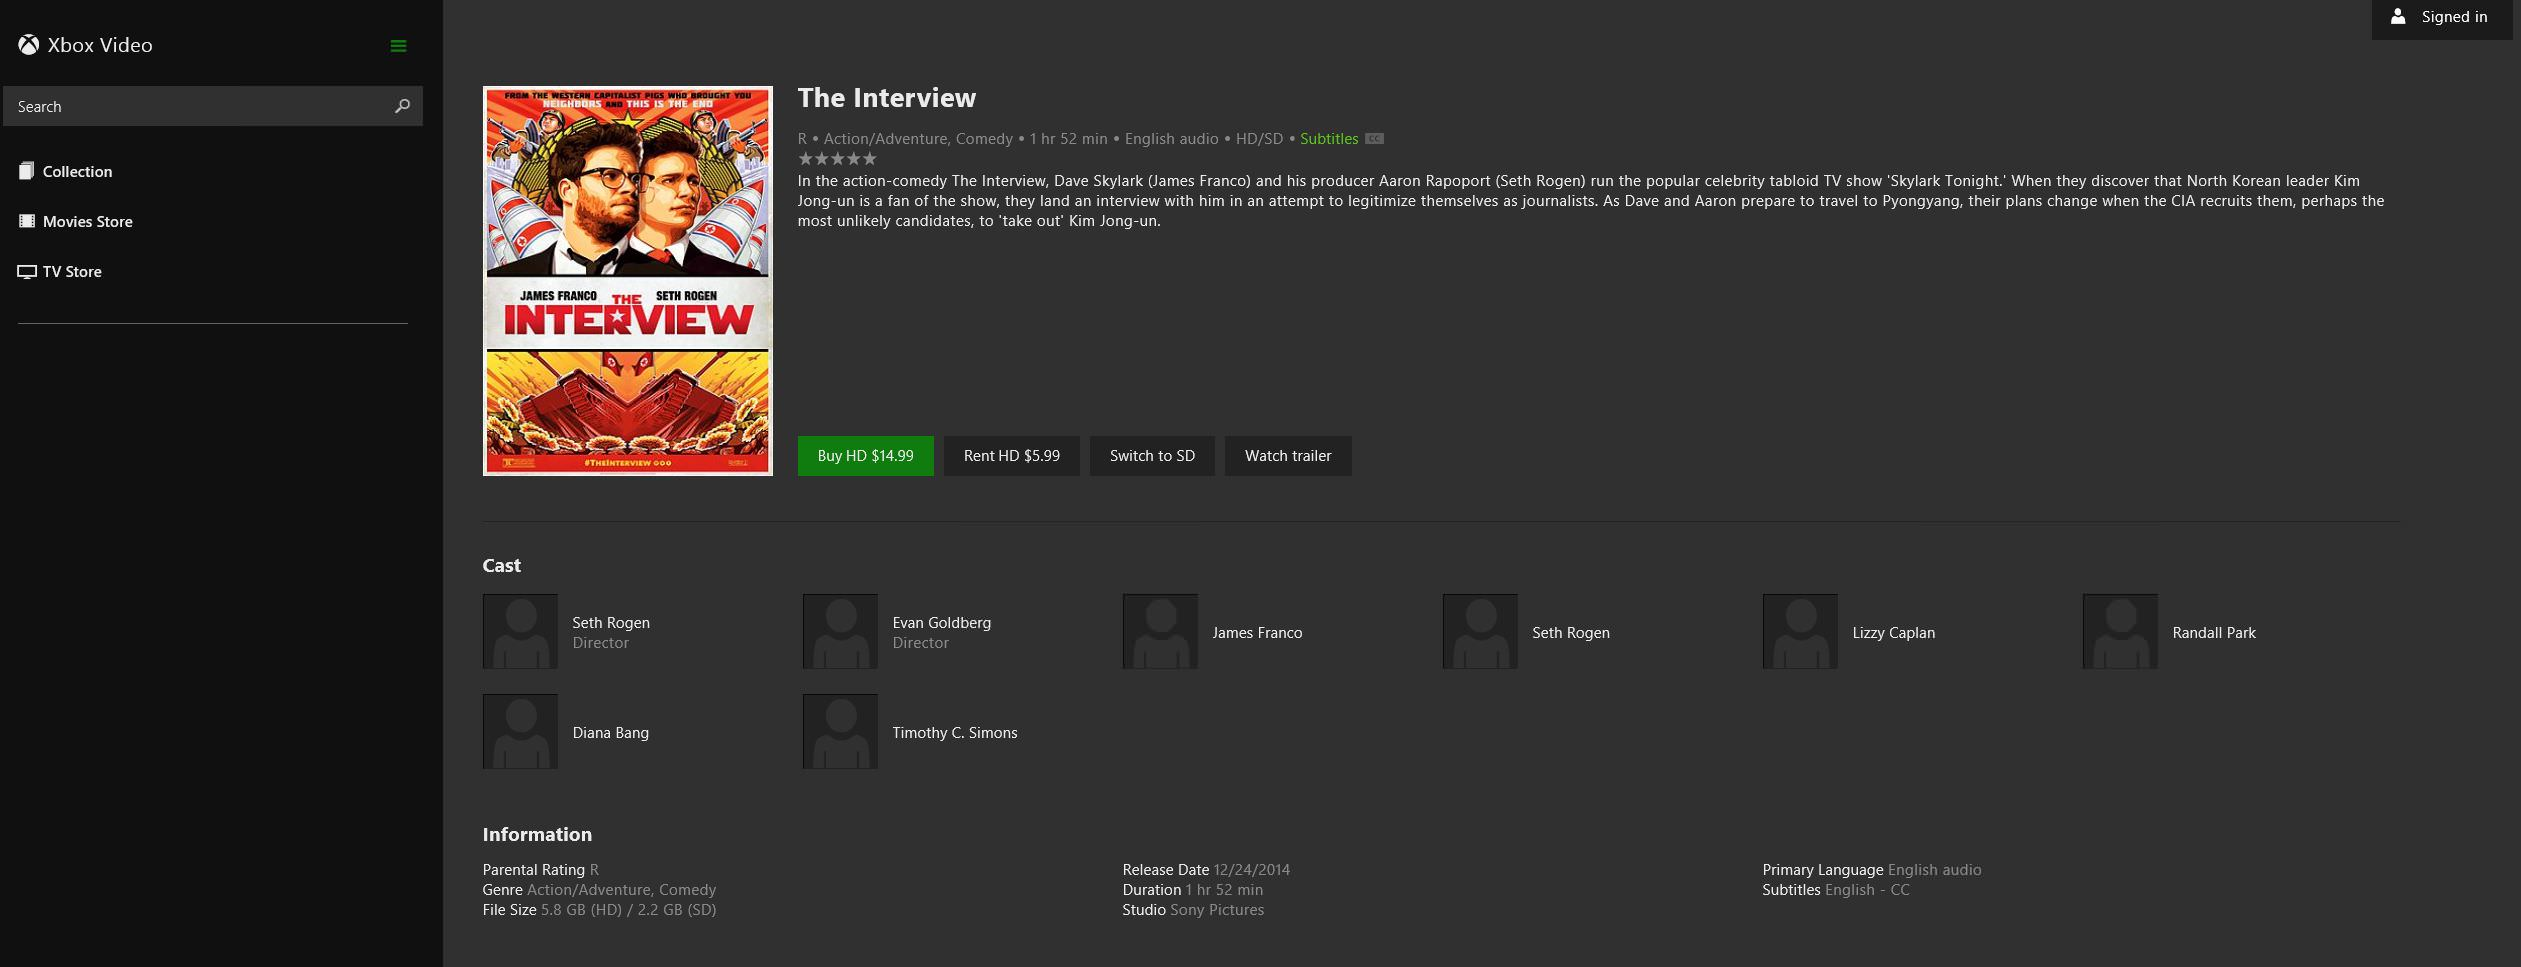 The Interview en Xbox video